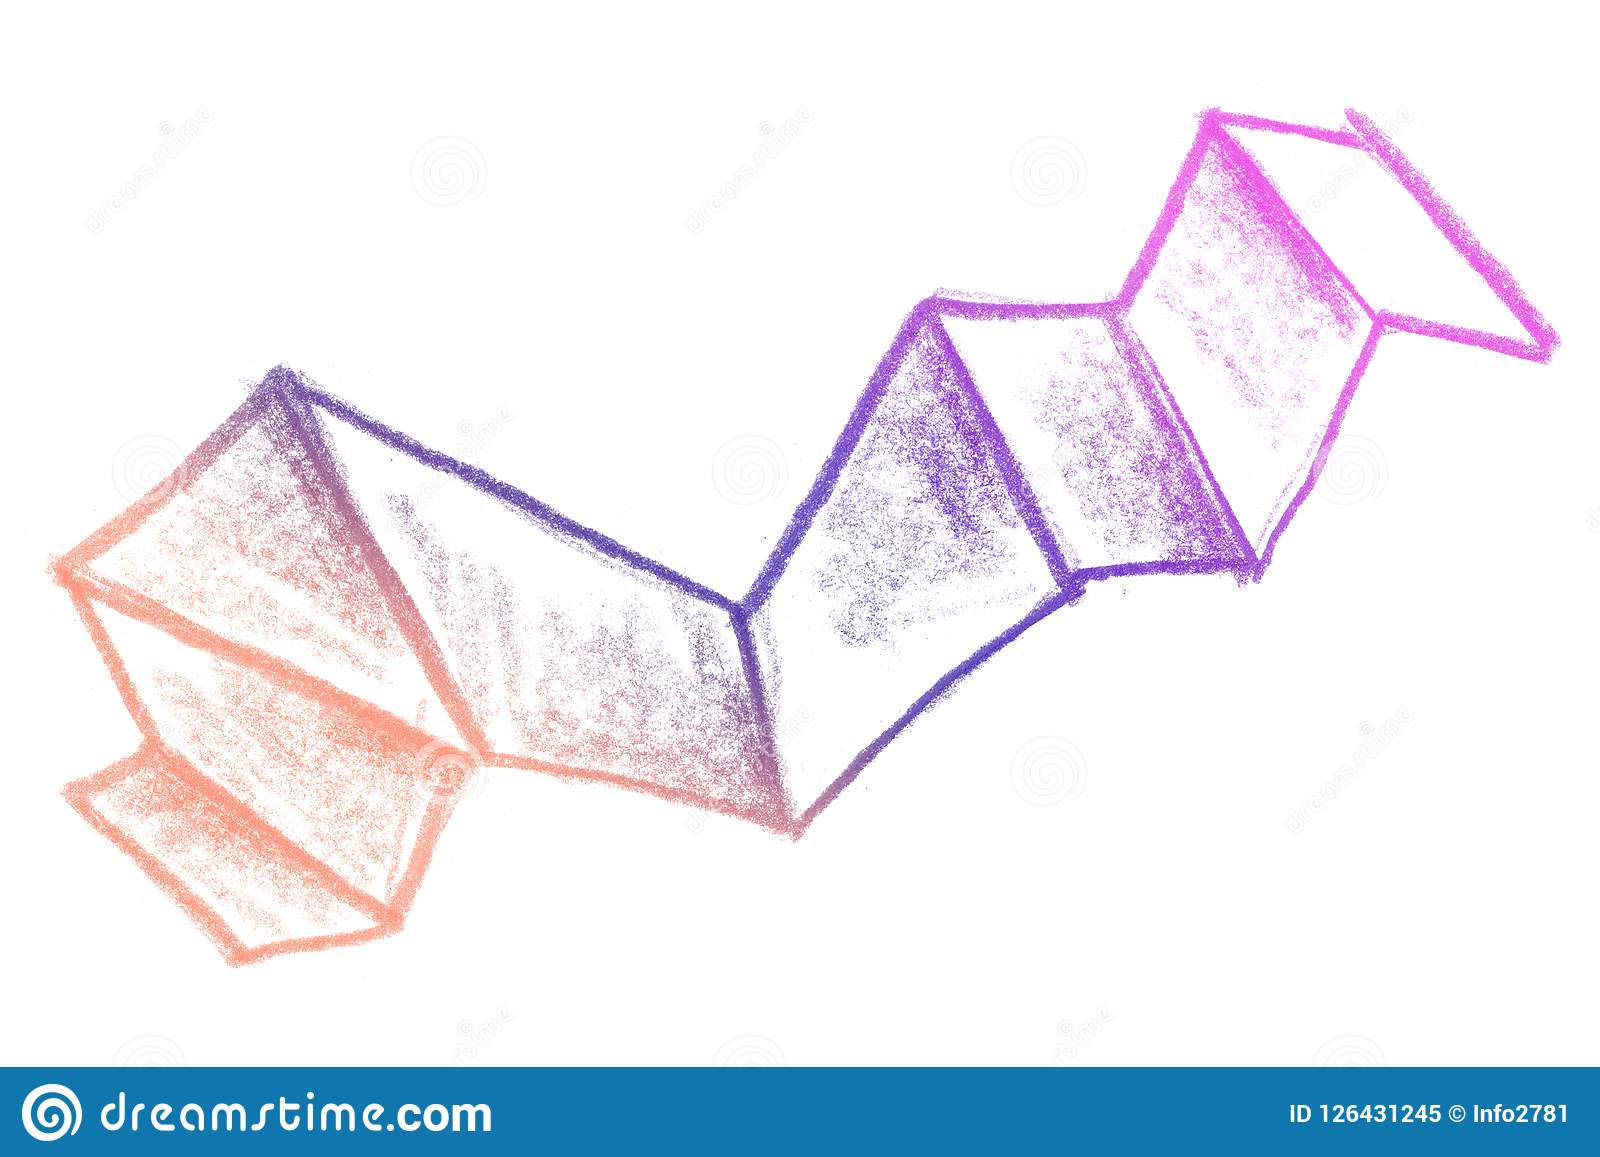 Glamour Gradient Sketch Background With Natural Pencil